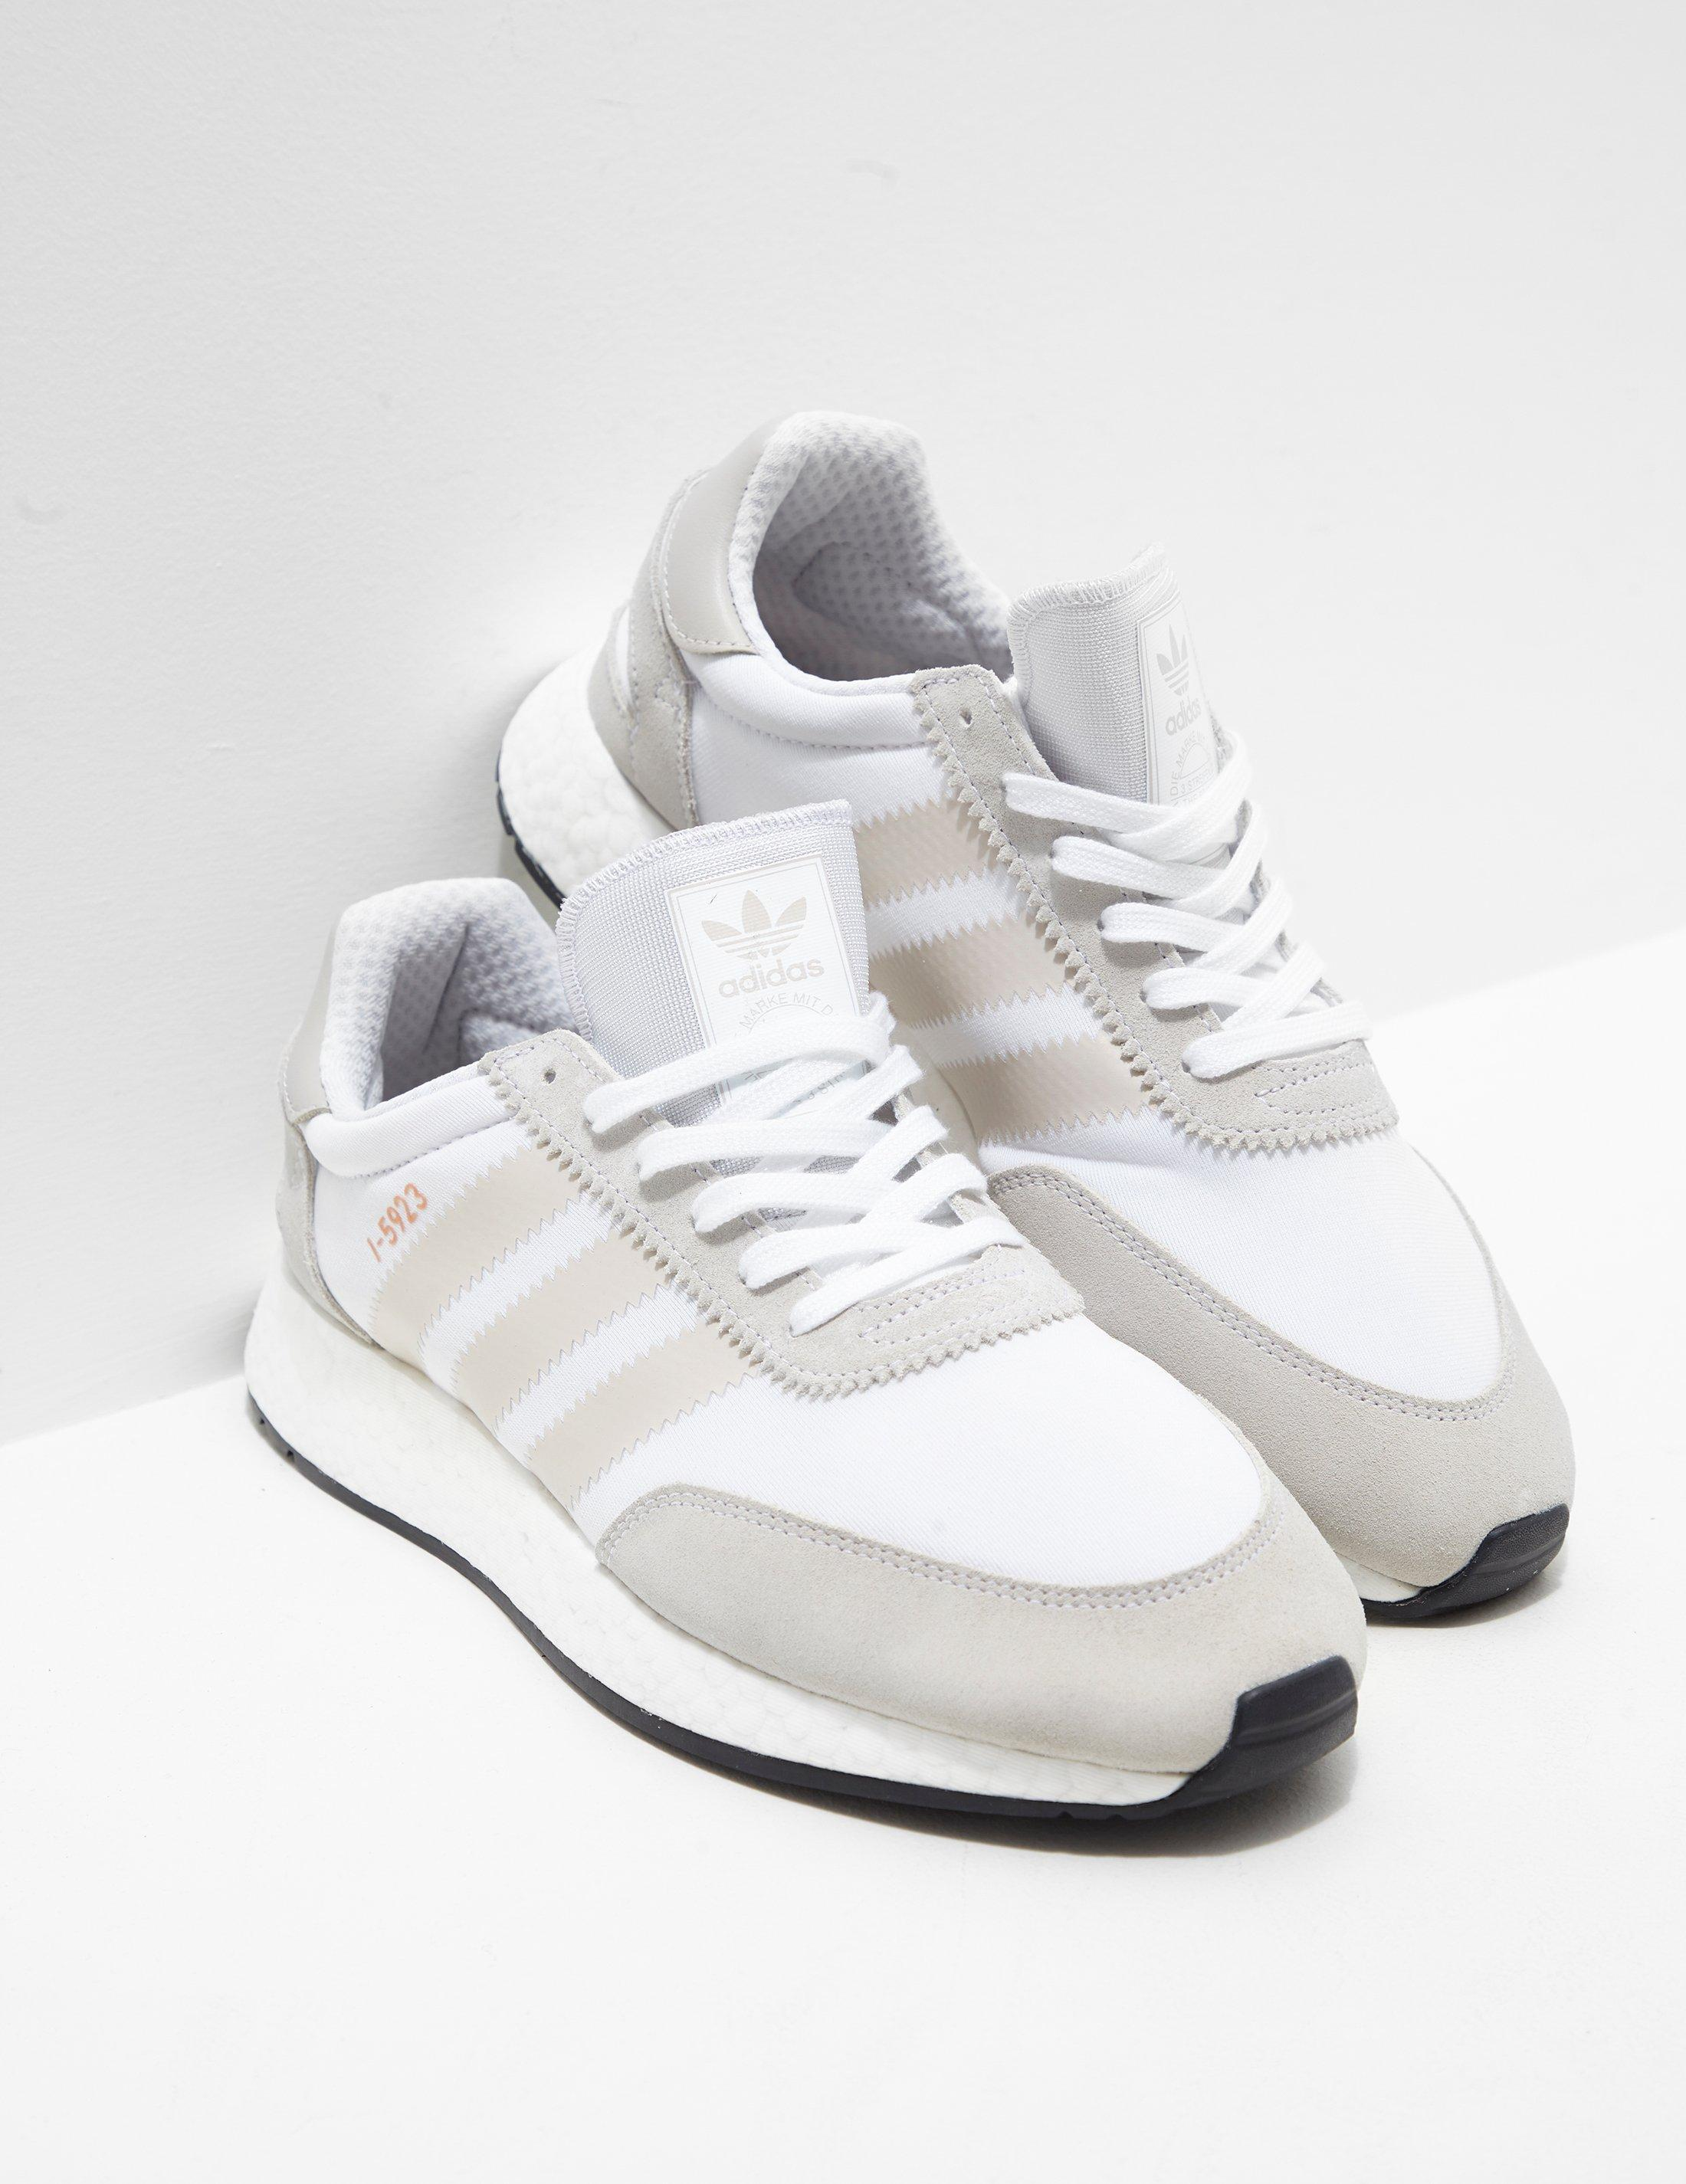 6a662f4ad71 adidas Originals Mens I-5923 Boost Grey white in Gray for Men - Lyst